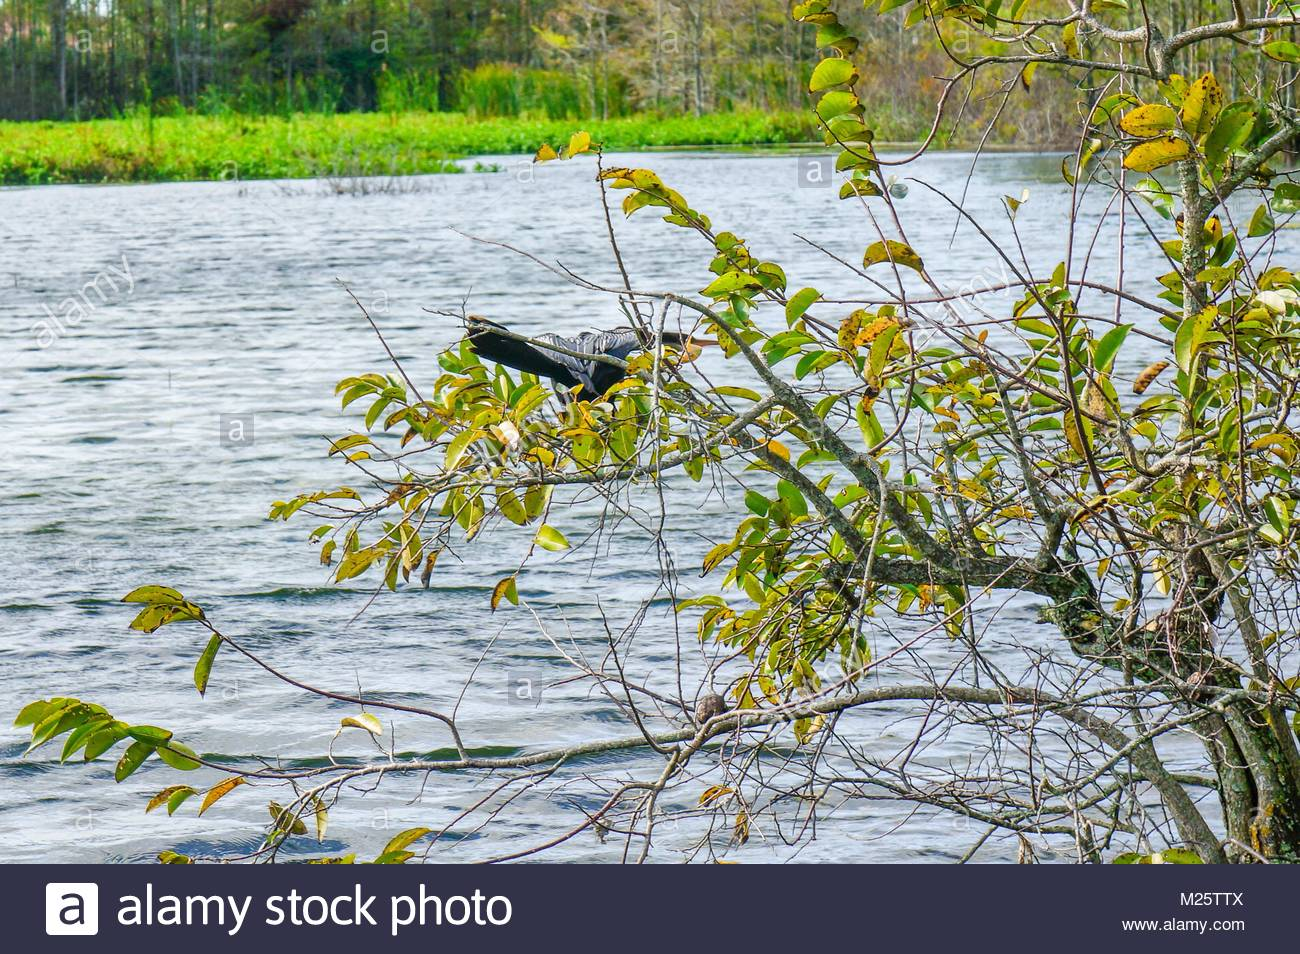 anhinga perched in a tree in a swamp landscape - Stock Image